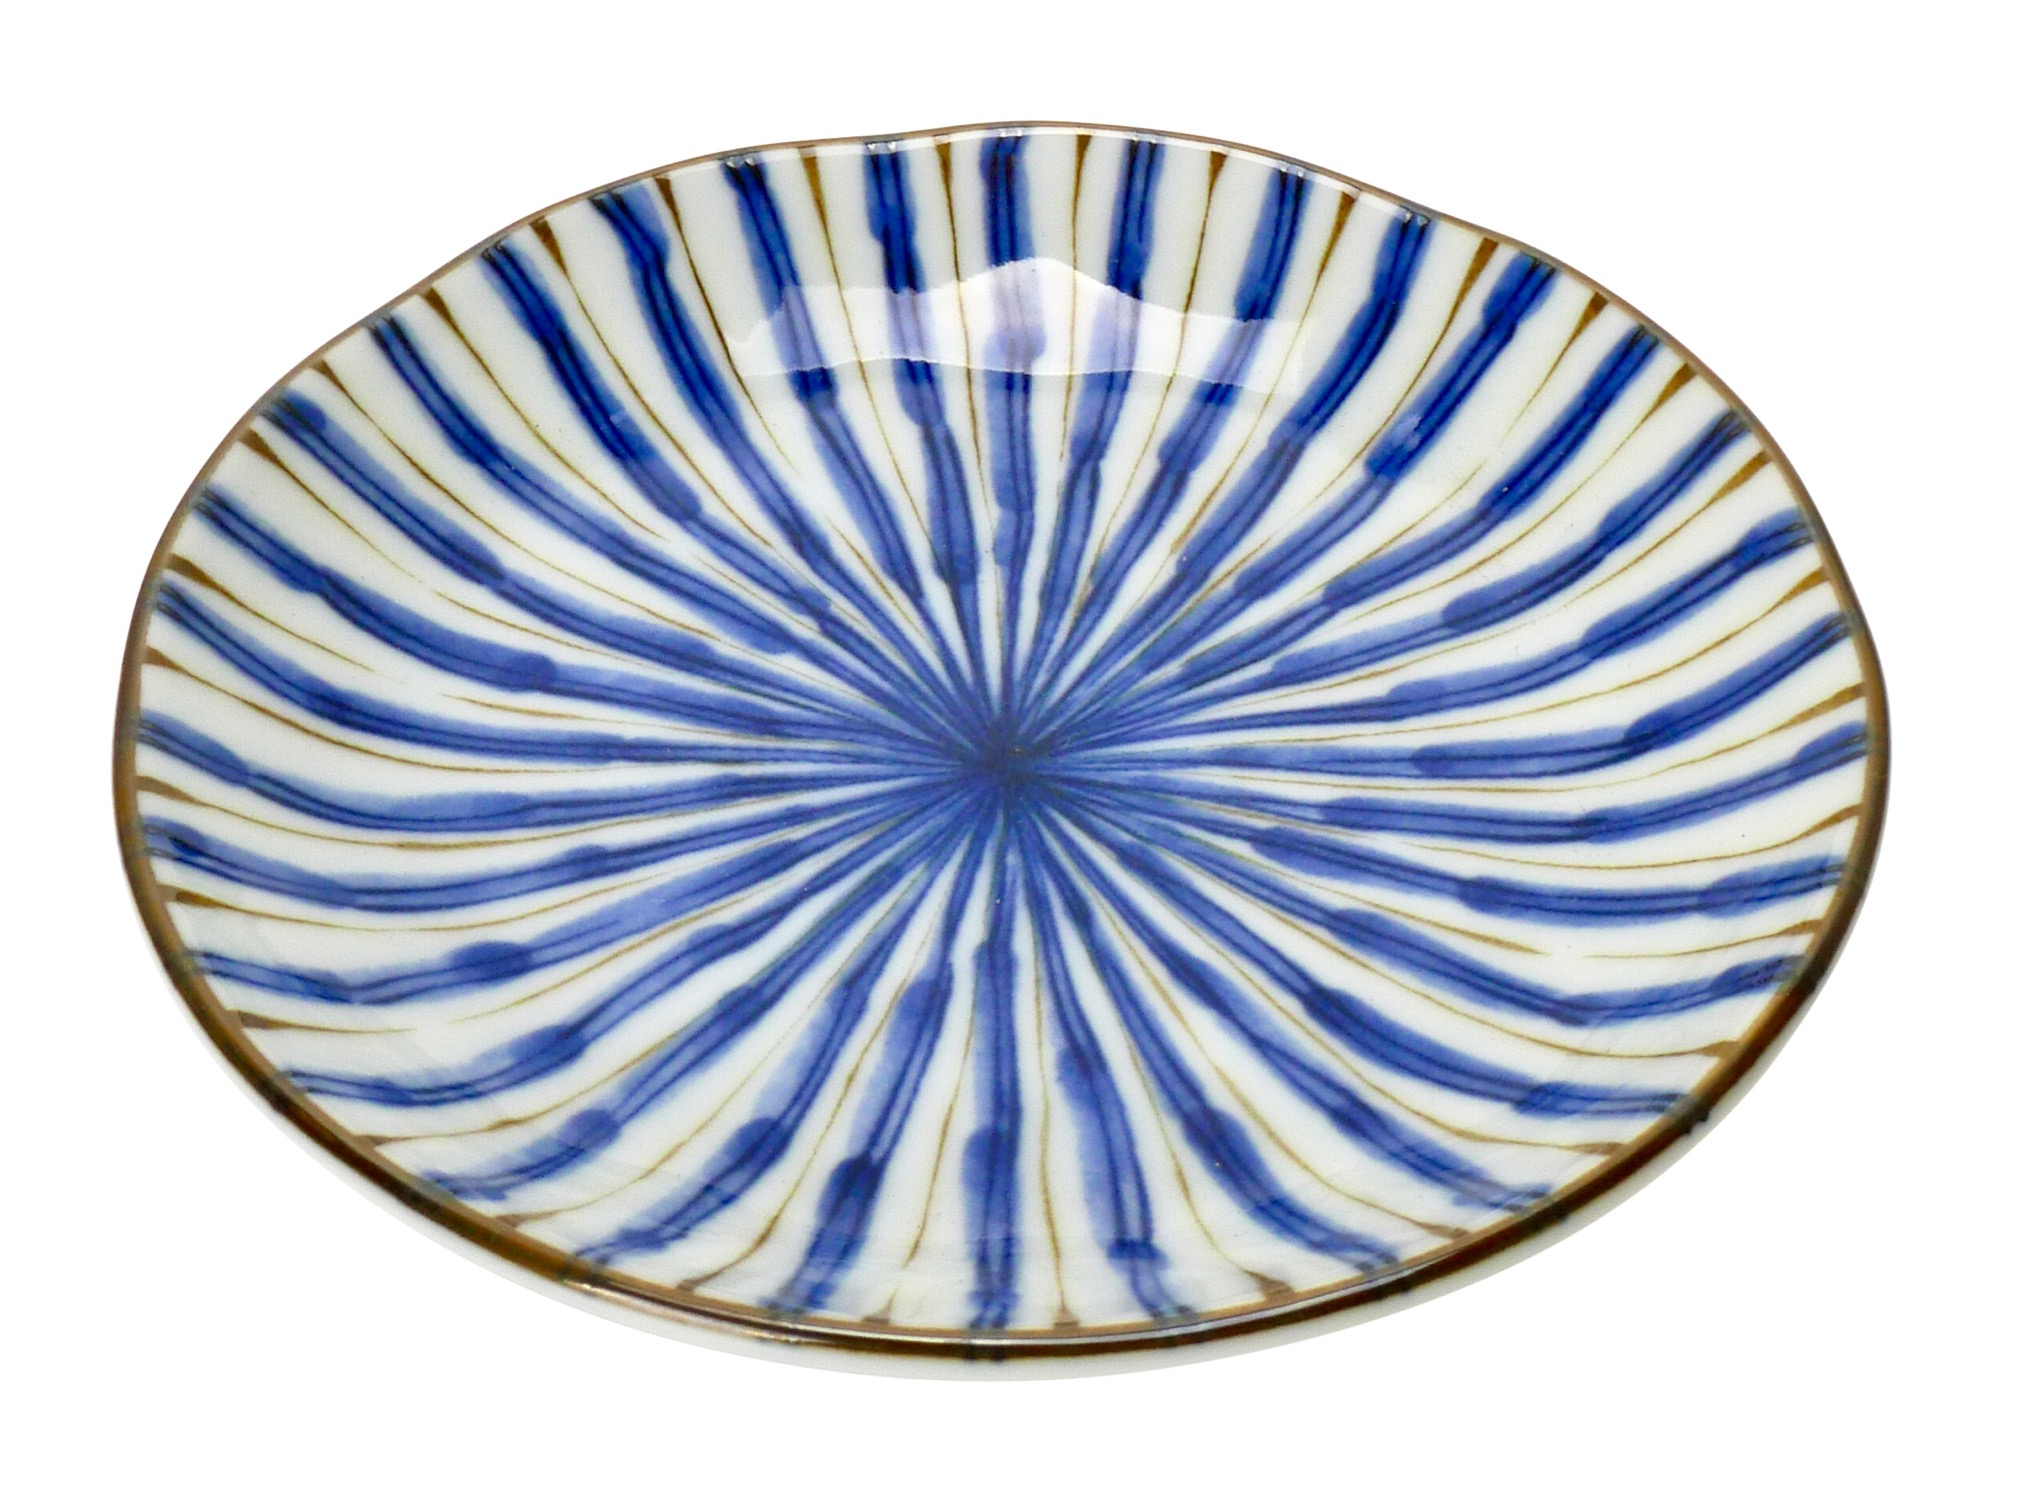 Image of SALAD OR DESSERT SIZE - Blue Pattern, 6.25 Inch, Set of 4